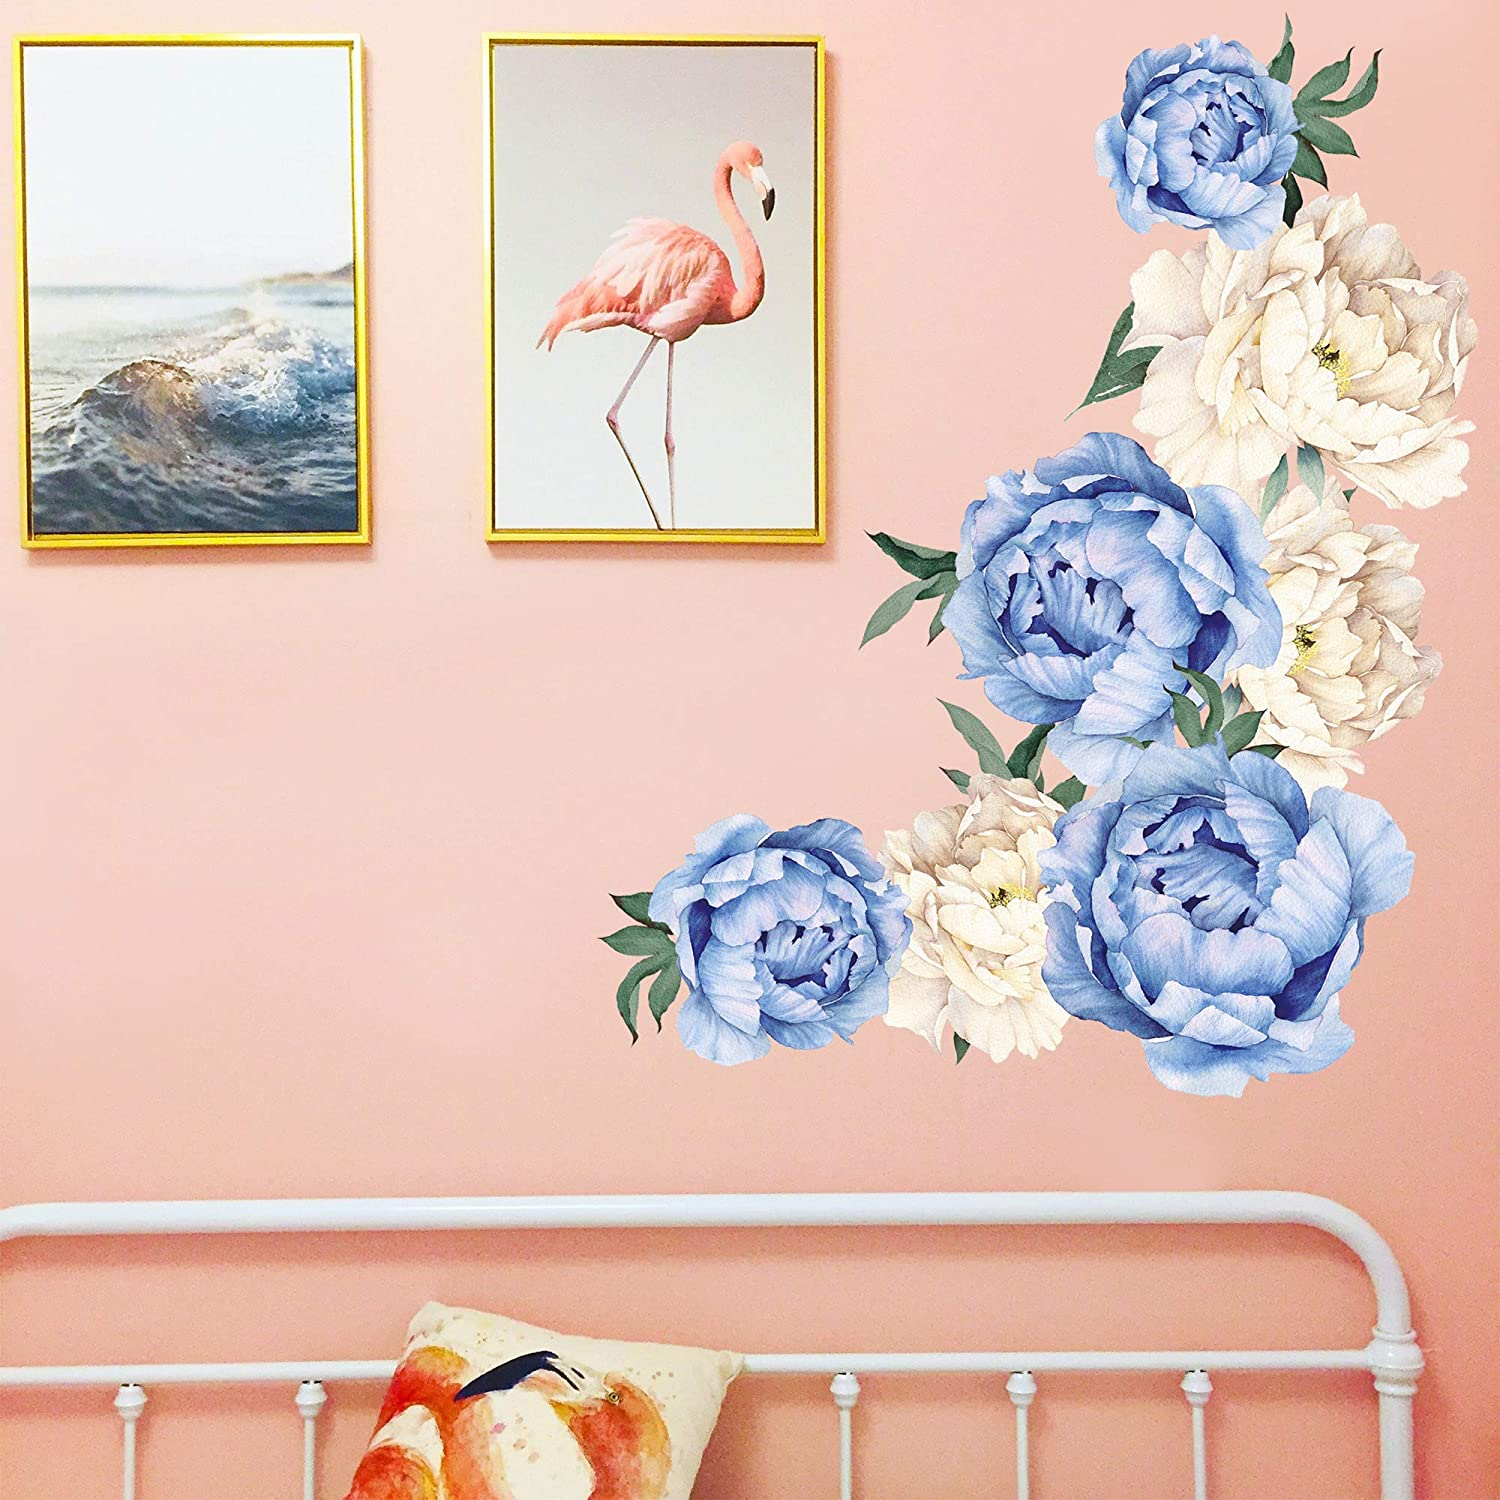 RW-C16 Peony Flowers Wall Decals White Blue Flowers Wall Stickers DIY 3D Removable Floral Rose Wall Art Murals for Kids Baby Girls Bedroom Living Room Nursery Kitchen Office Room Decoration Blue